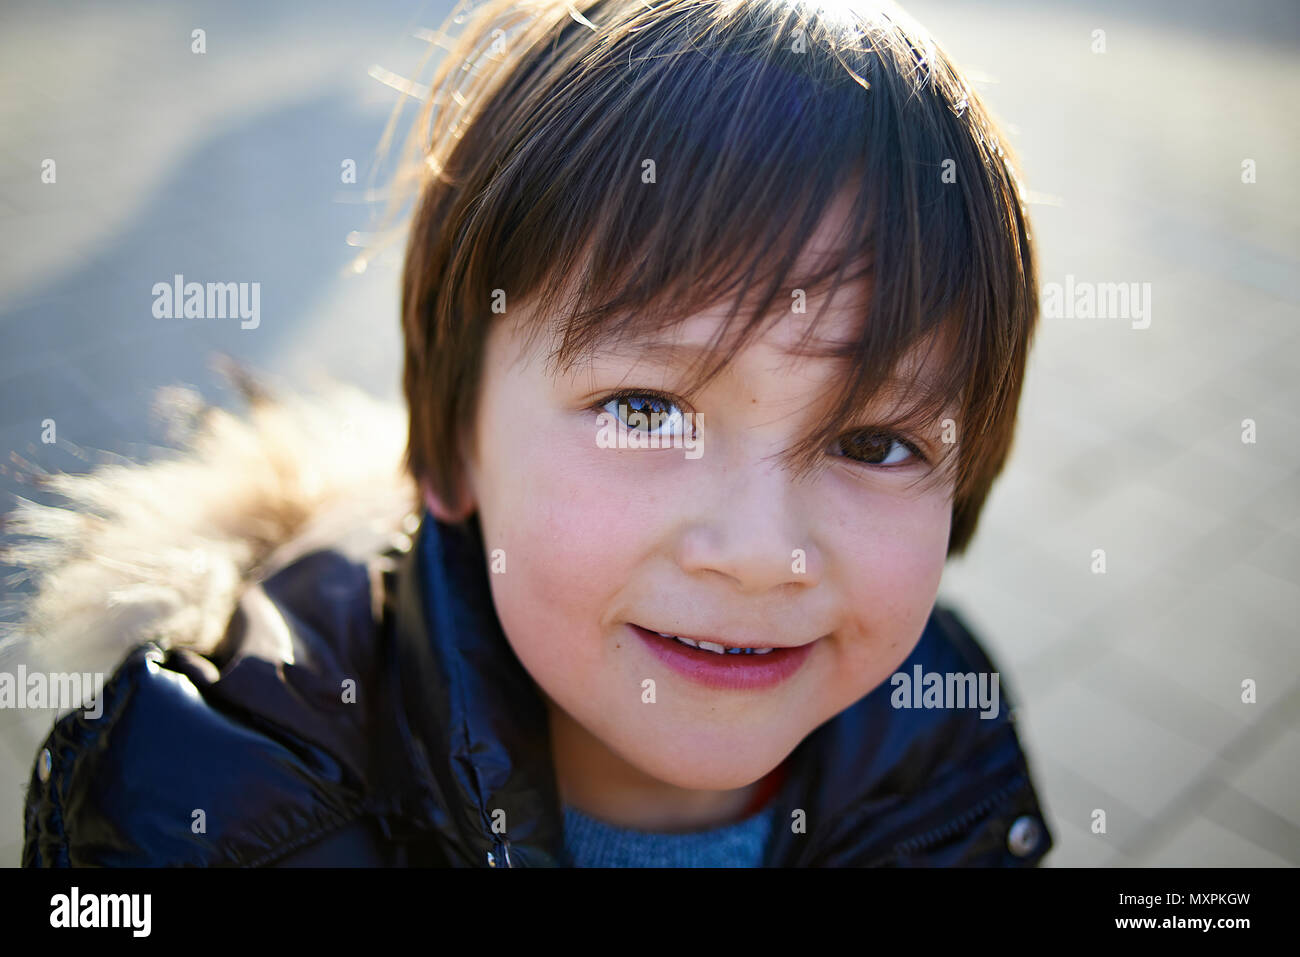 Portrait of a young preteen Japanese boy in autums sunshine at a school playground looking into camera - Stock Image